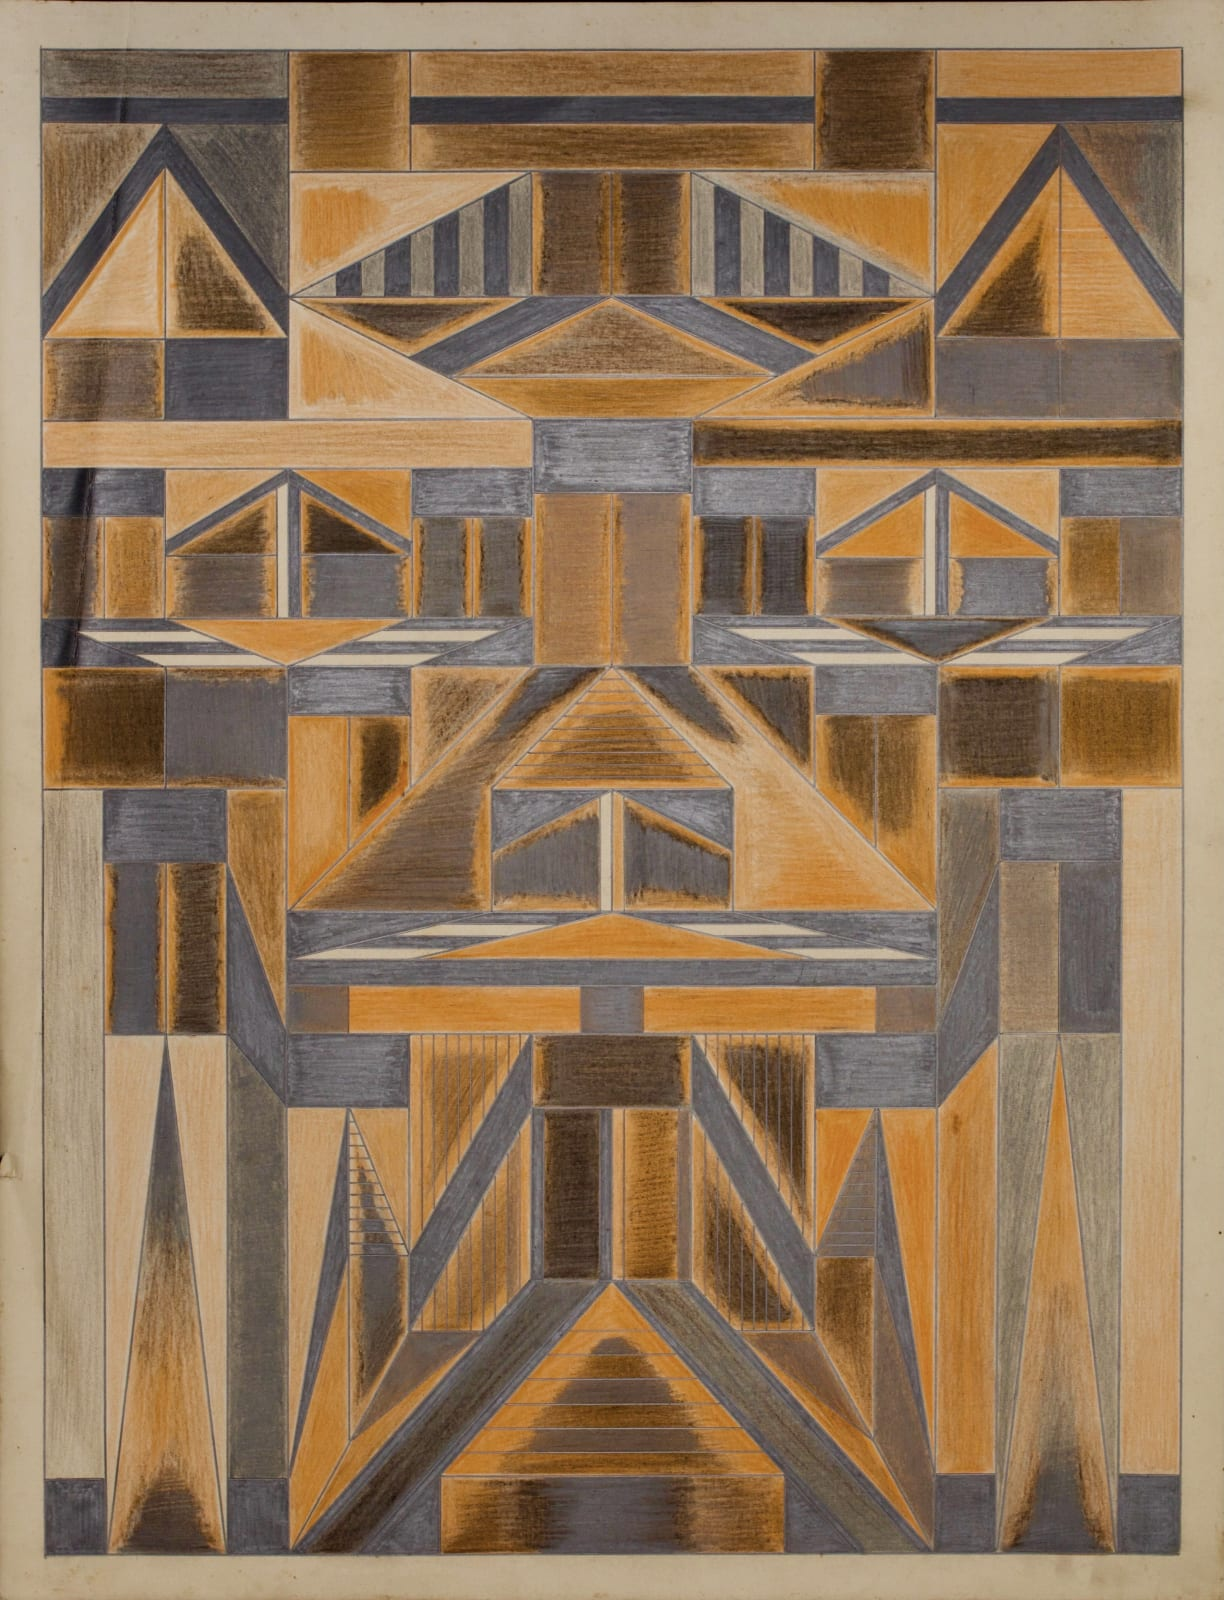 Untitled, ca. 1930 - 55 Colored pencil and graphite on paper 21 x 17 1/2 in. 53.3 x 44.5 cm. (DG 42)